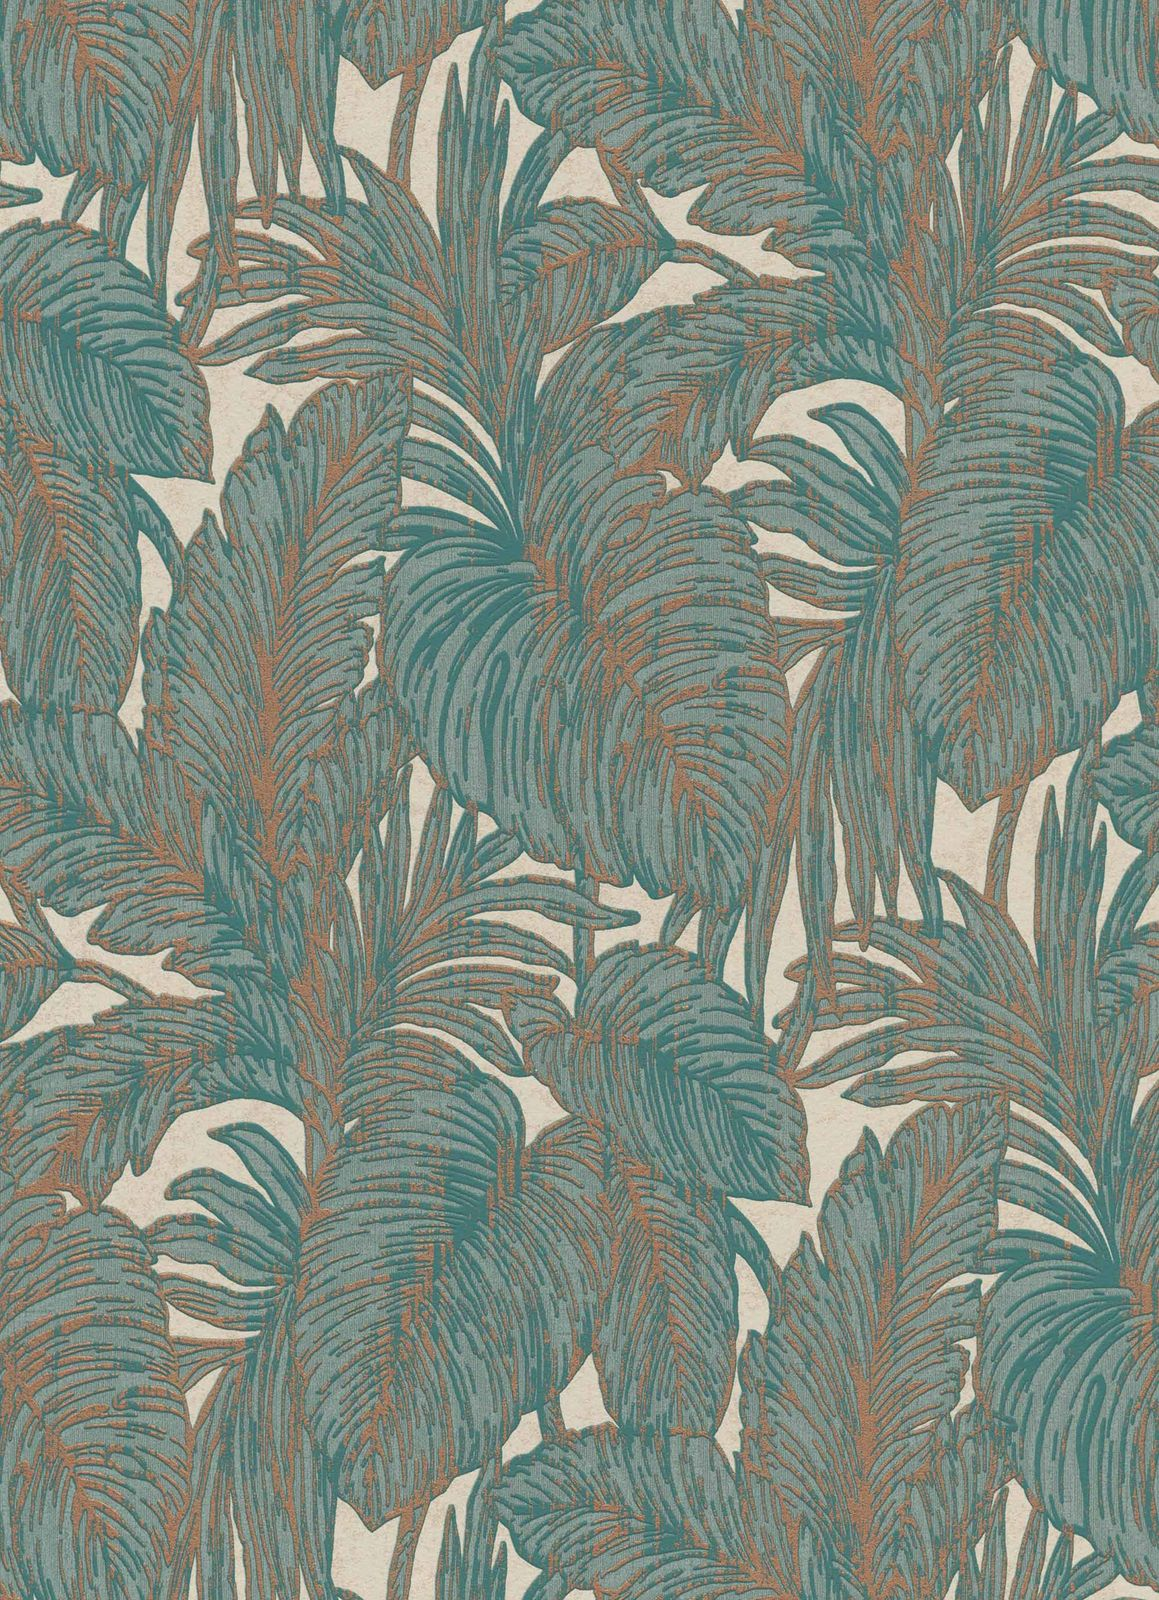 Tapete Jungle Wallpaper Floral Jungle Turquoise Copper Erismann 5410 19